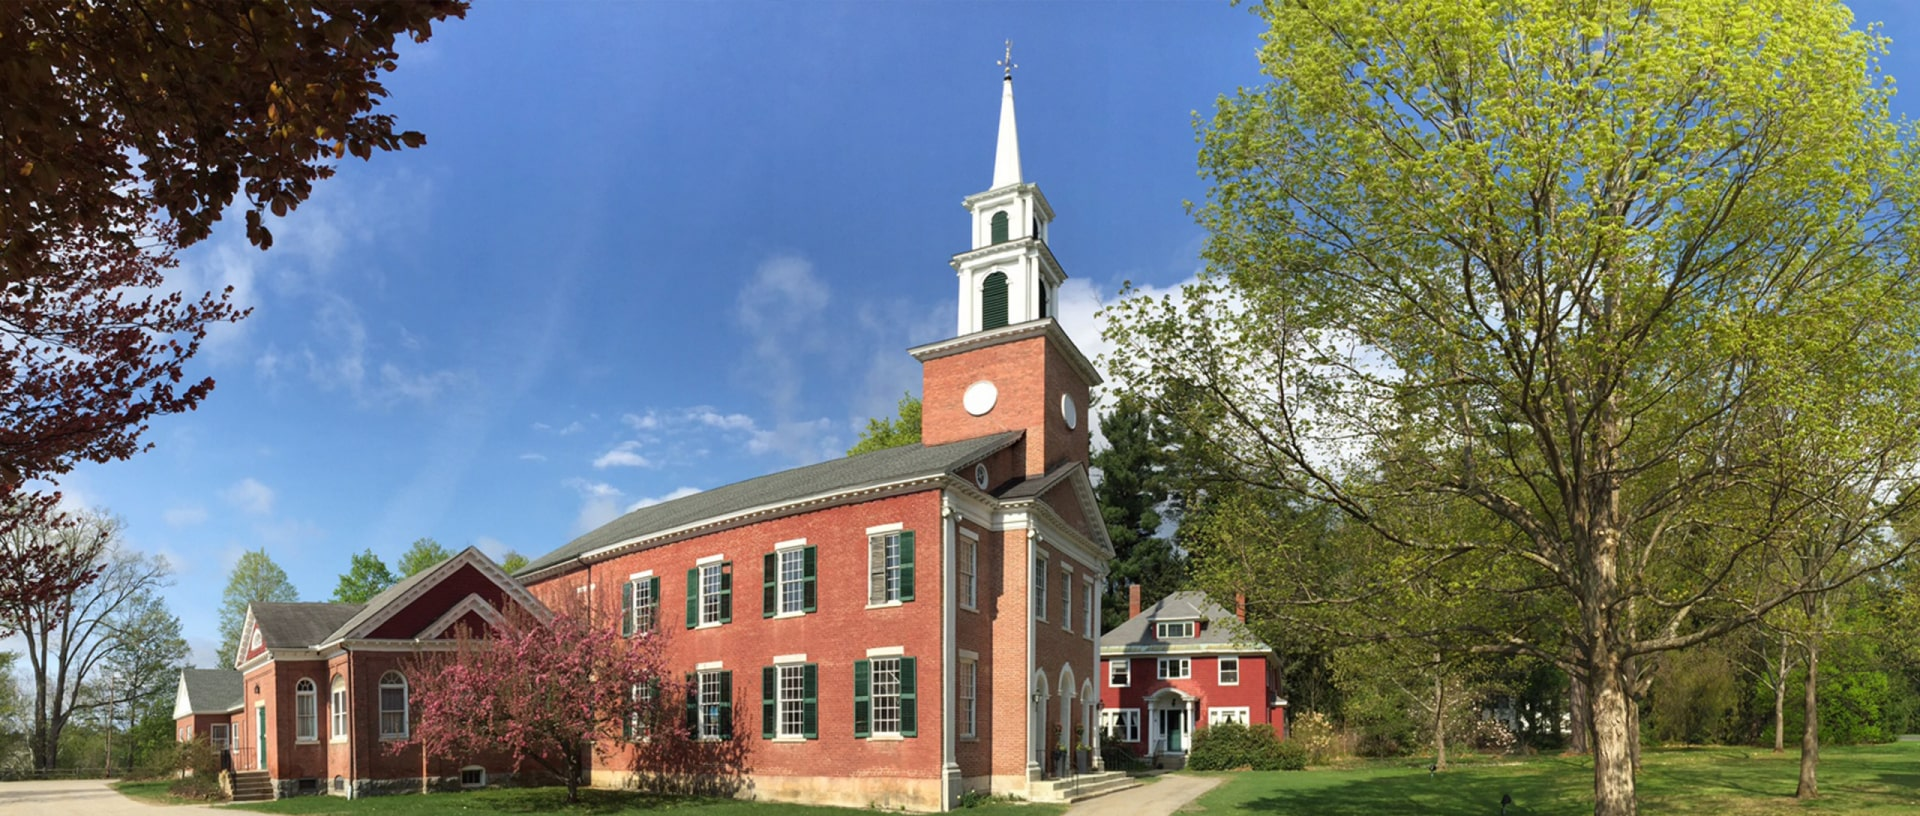 Exterior image of the historic 1824 congregational church in Stockbridge. A brick building with green shutters and a tall white steeple.